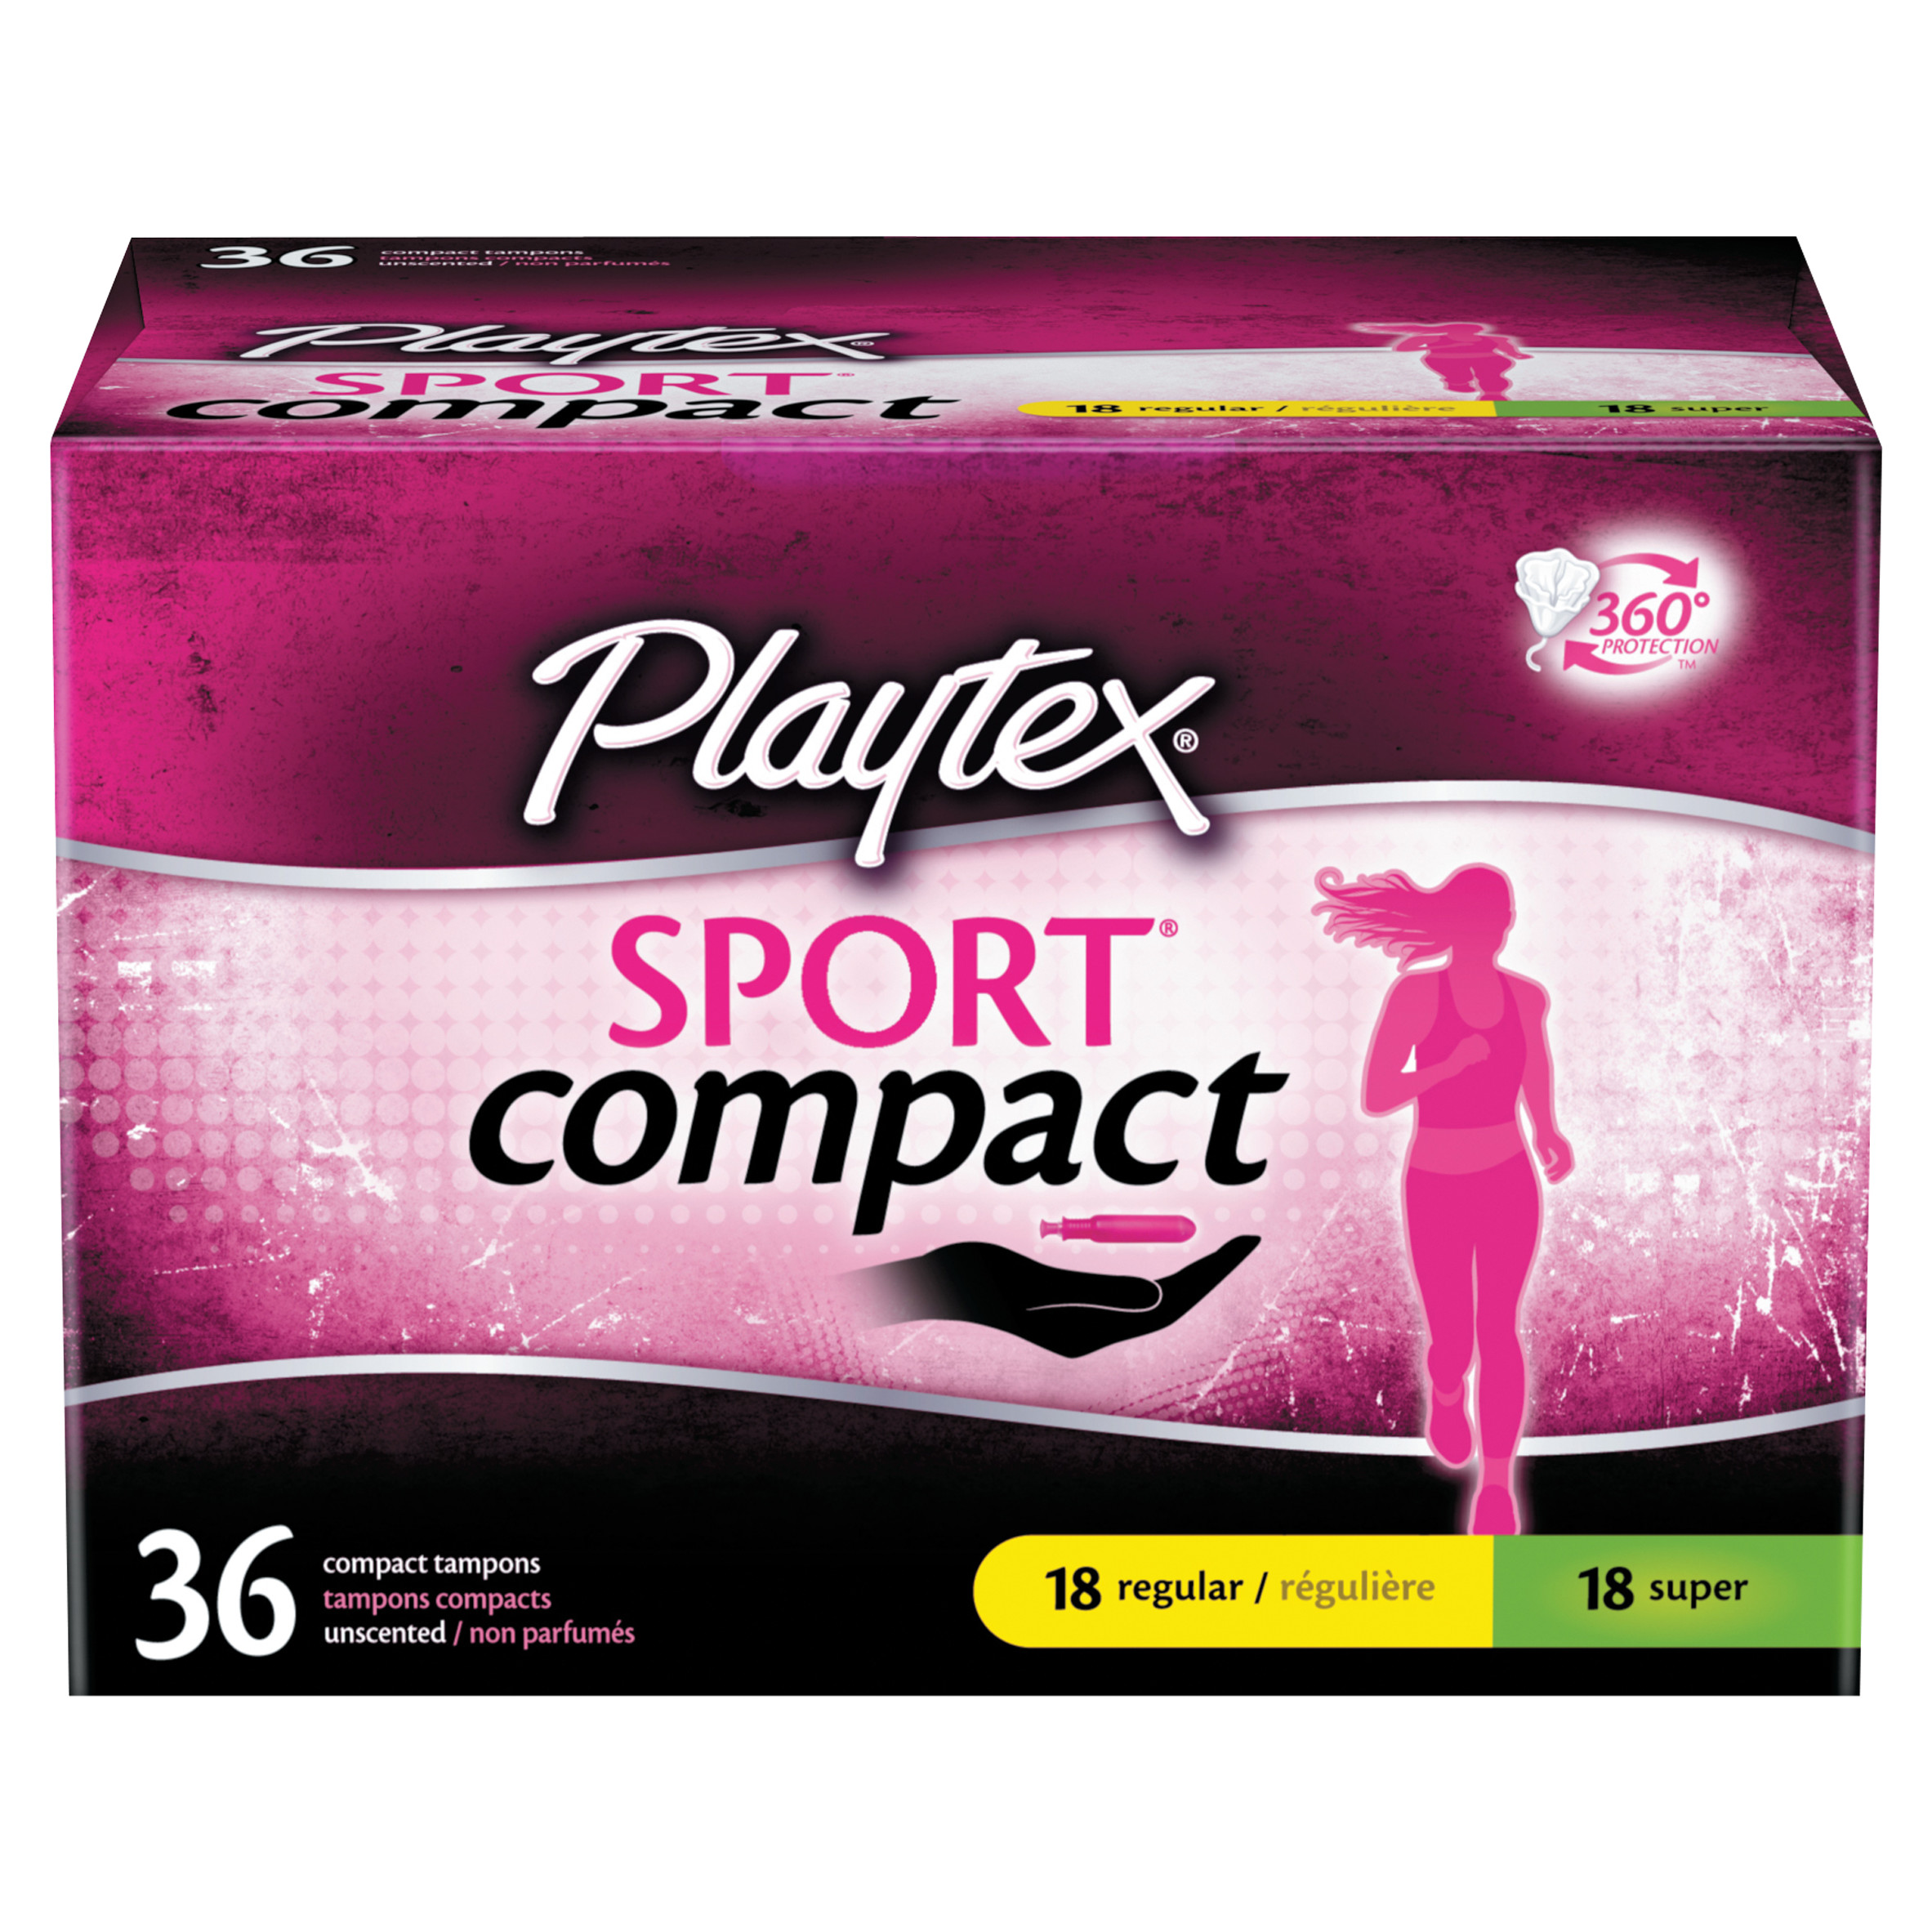 Playtex Sport Compact Tampons Multi-Pack 18 Regular and 18 Super - 36 Count